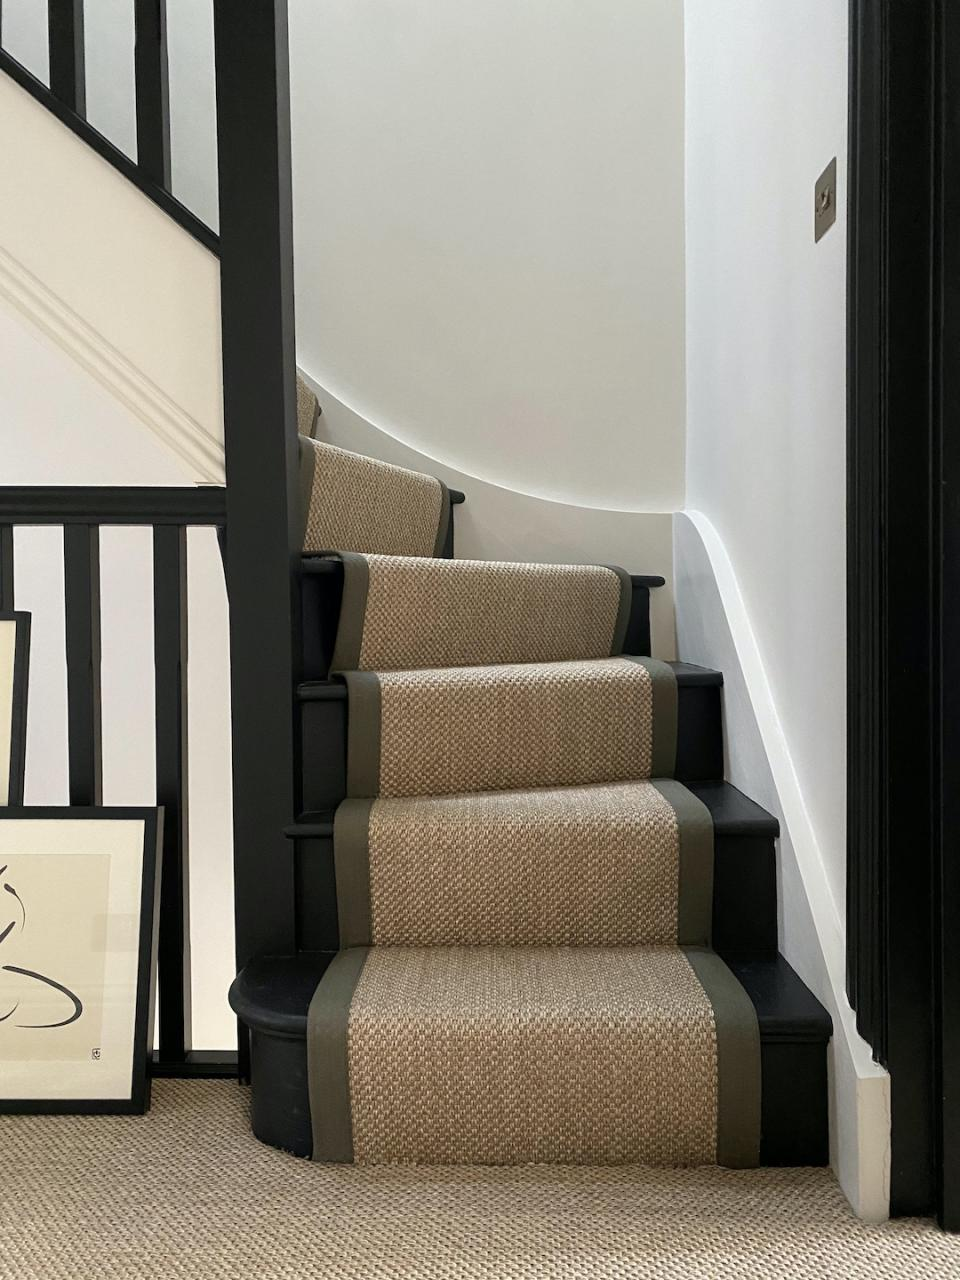 staircase ideas: sisal stair runner with border